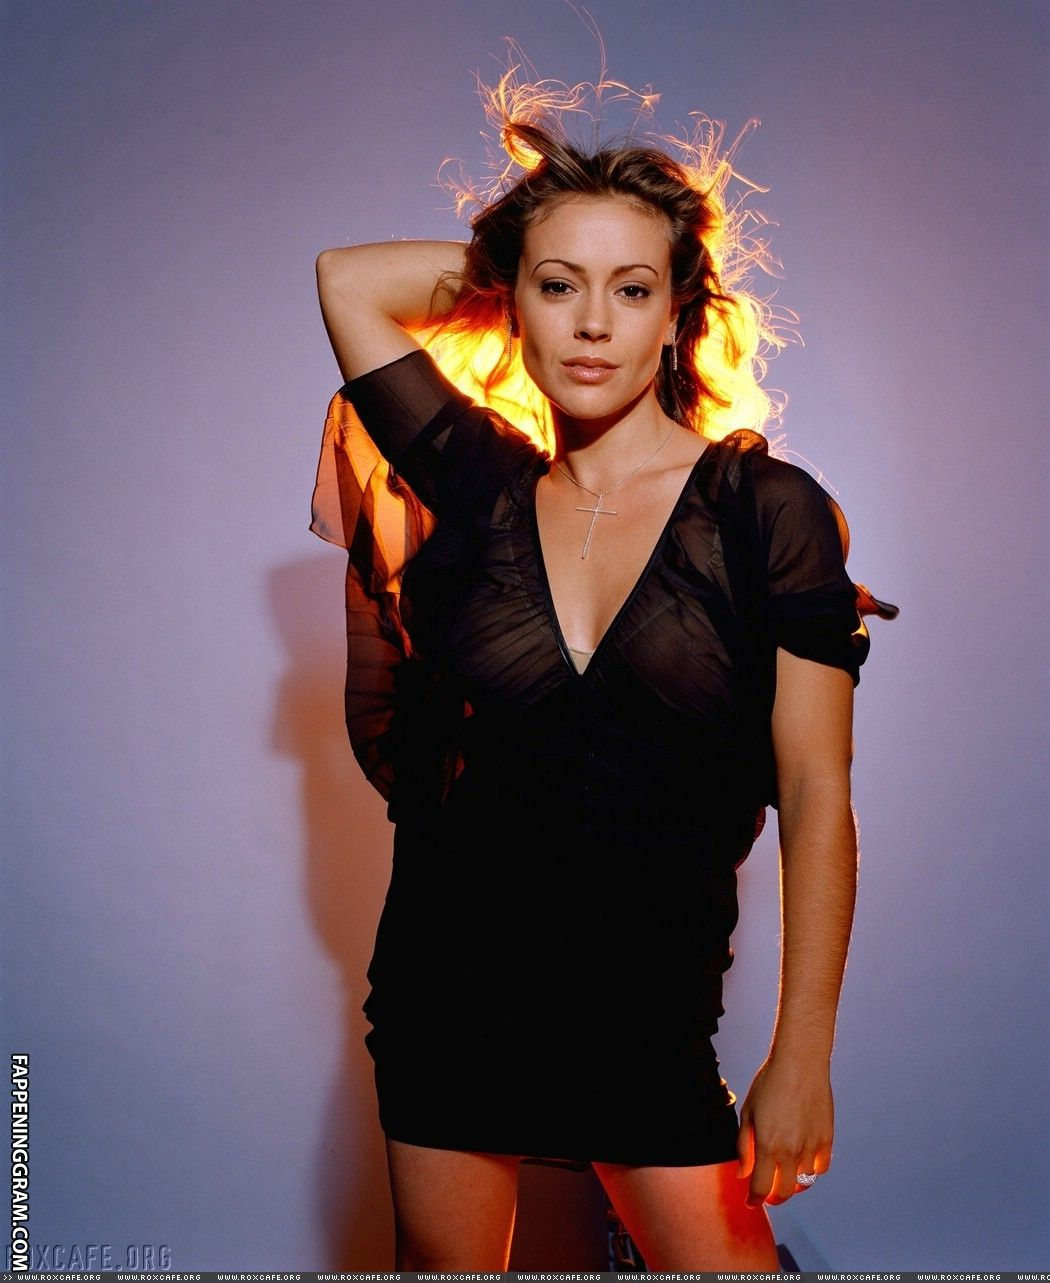 Alyssa Milano Nude The Fappening - Page 12 - FappeningGram